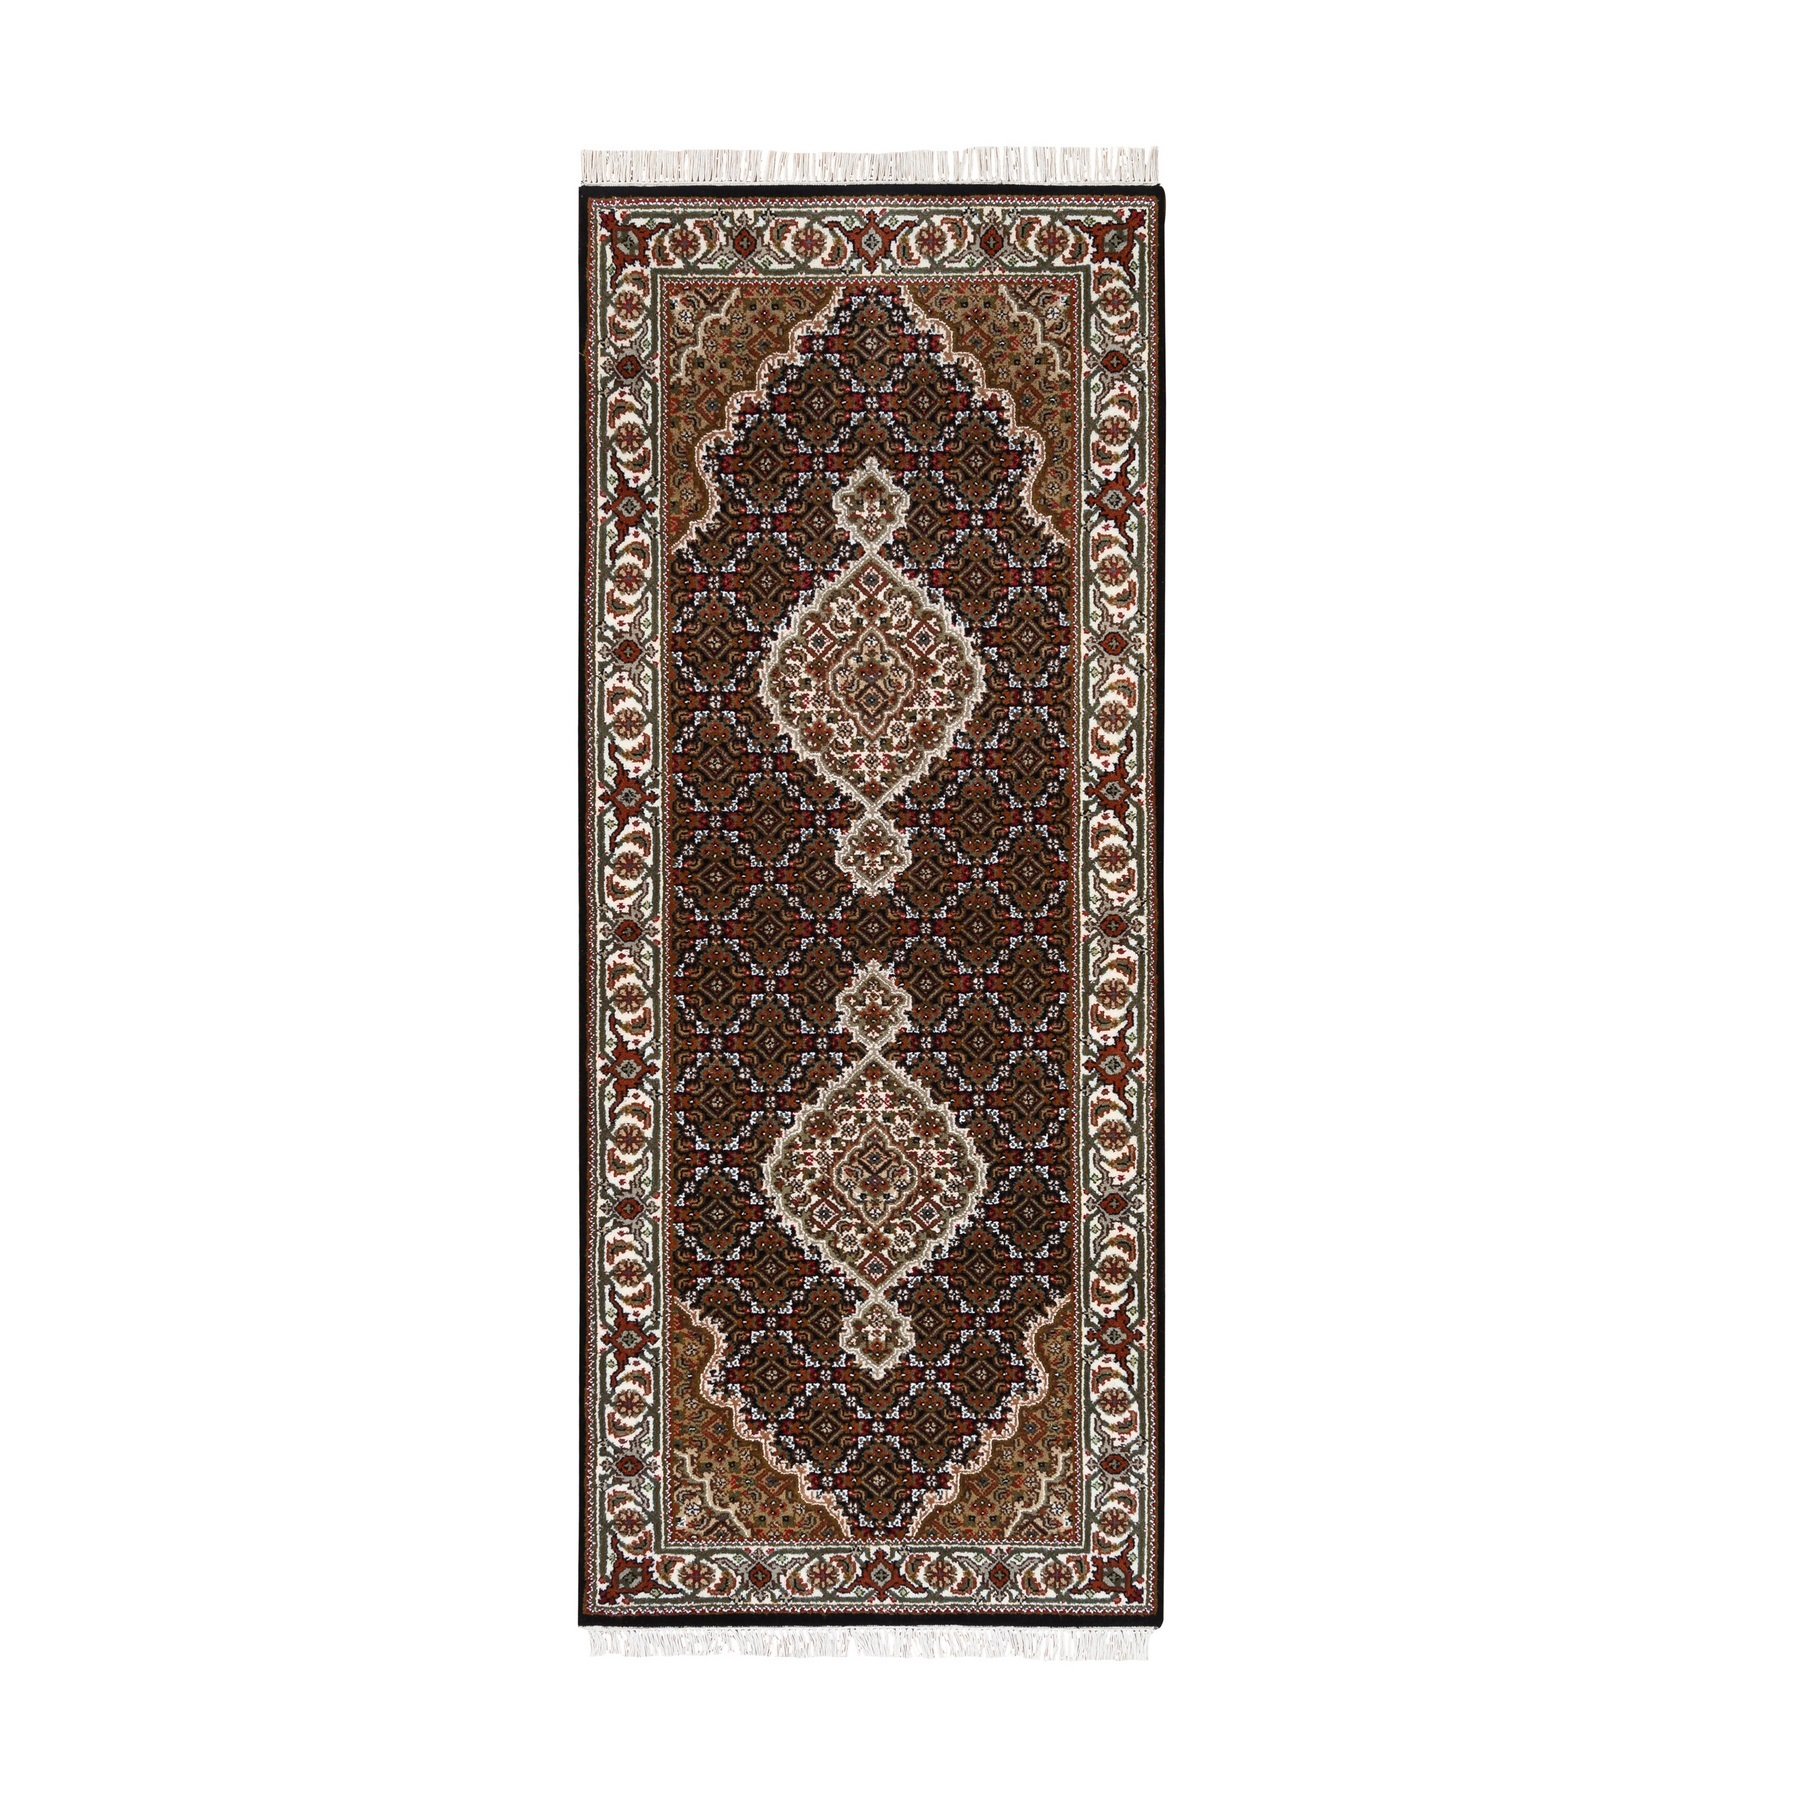 "2'8""x6'1"" Hand Woven Fish Medallion Design Tabriz Mahi Black Wool And Silk Oriental Runner Rug"